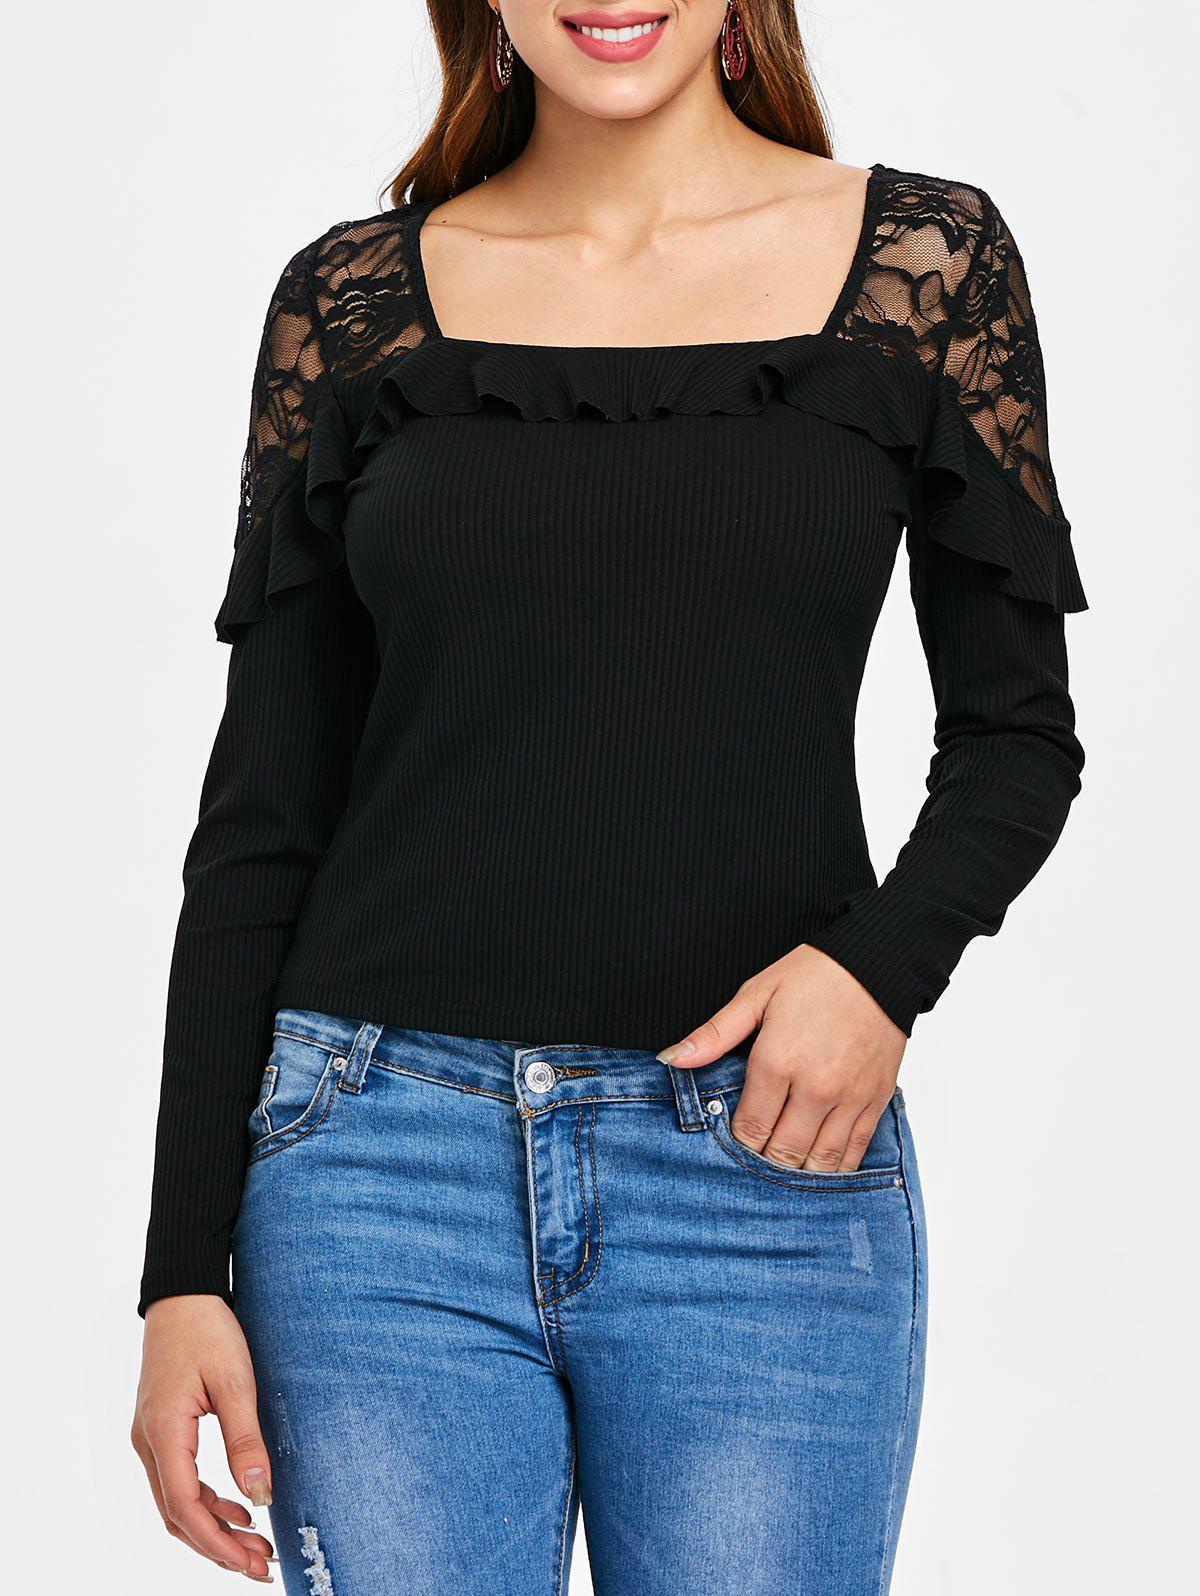 Buy Lace Panel Ruffle Embellished Ribbed Top